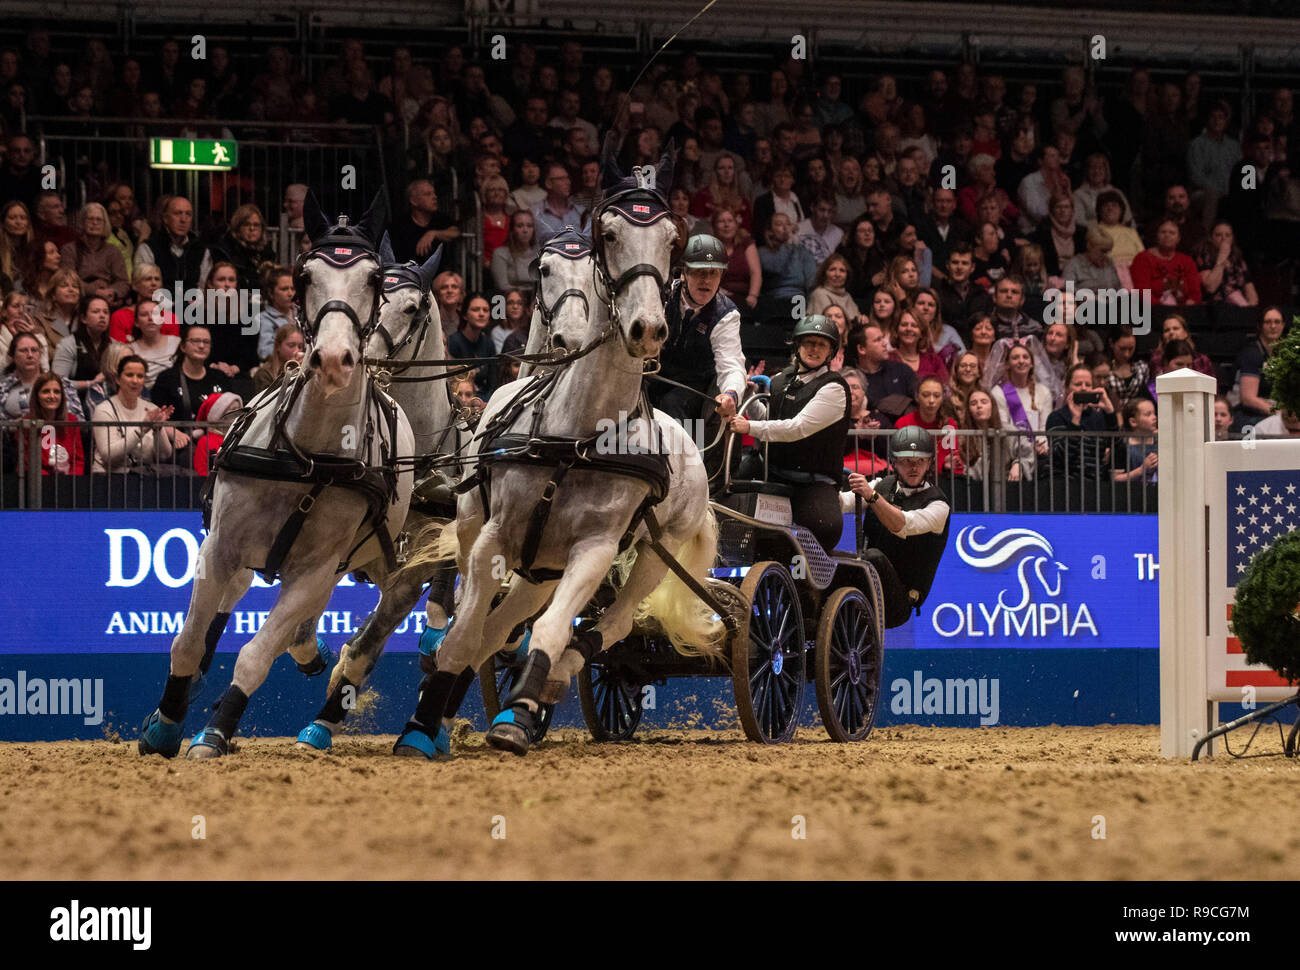 Great Britain's Daniel Naprous competes in the FEI Driving World Cup leg during day six of the London International Horse Show at London Olympia. - Stock Image